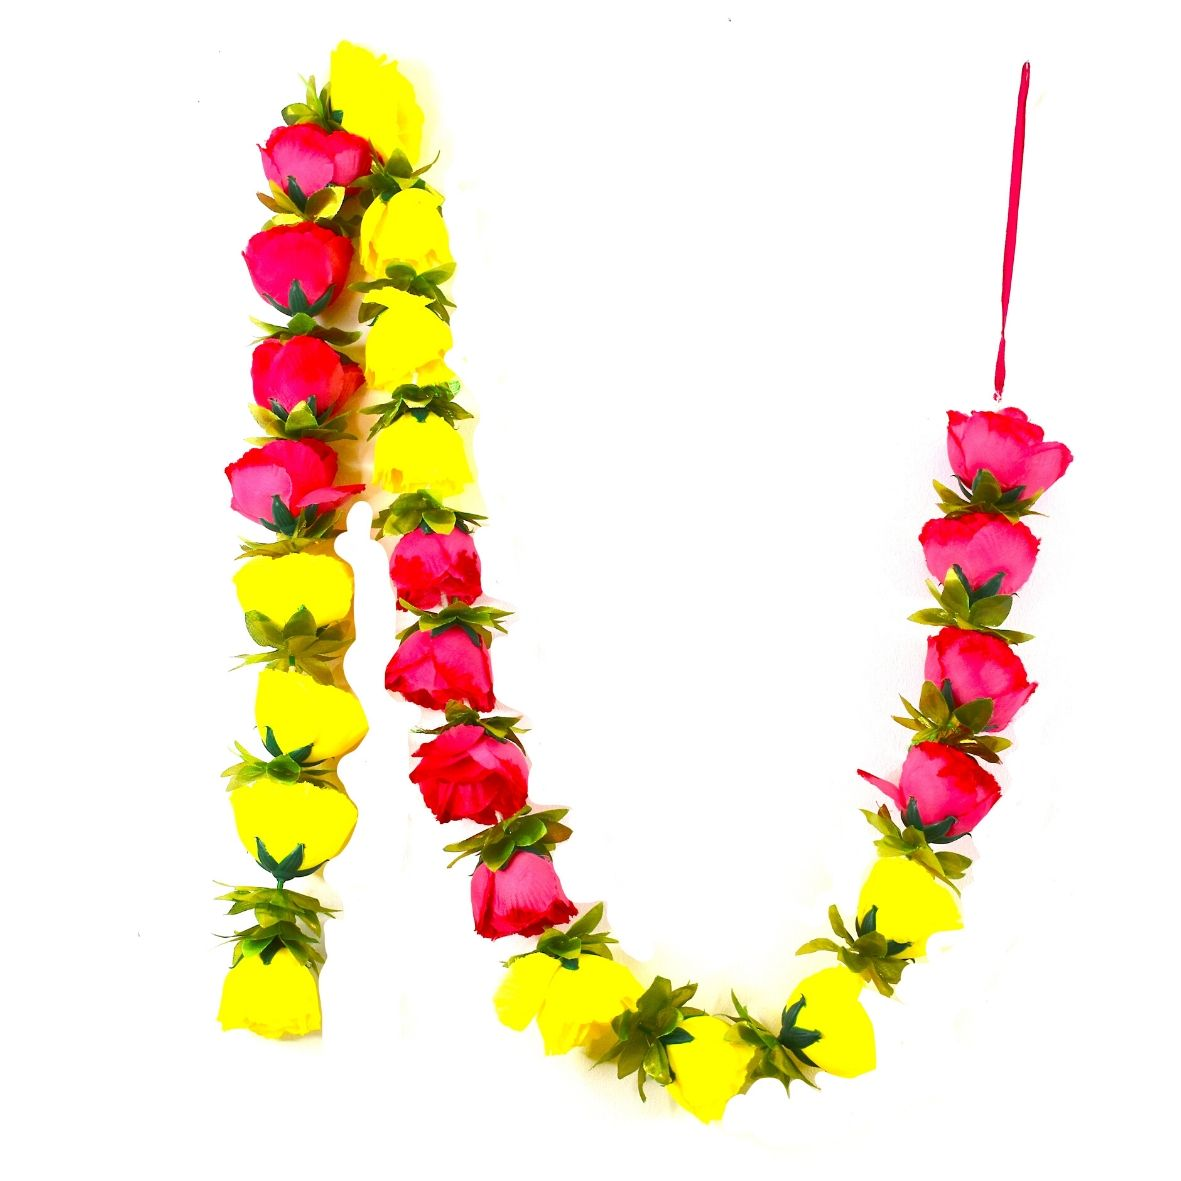 1 x Yellow & Pink Rose Garland with Golden Green Leaves (140cm Long)